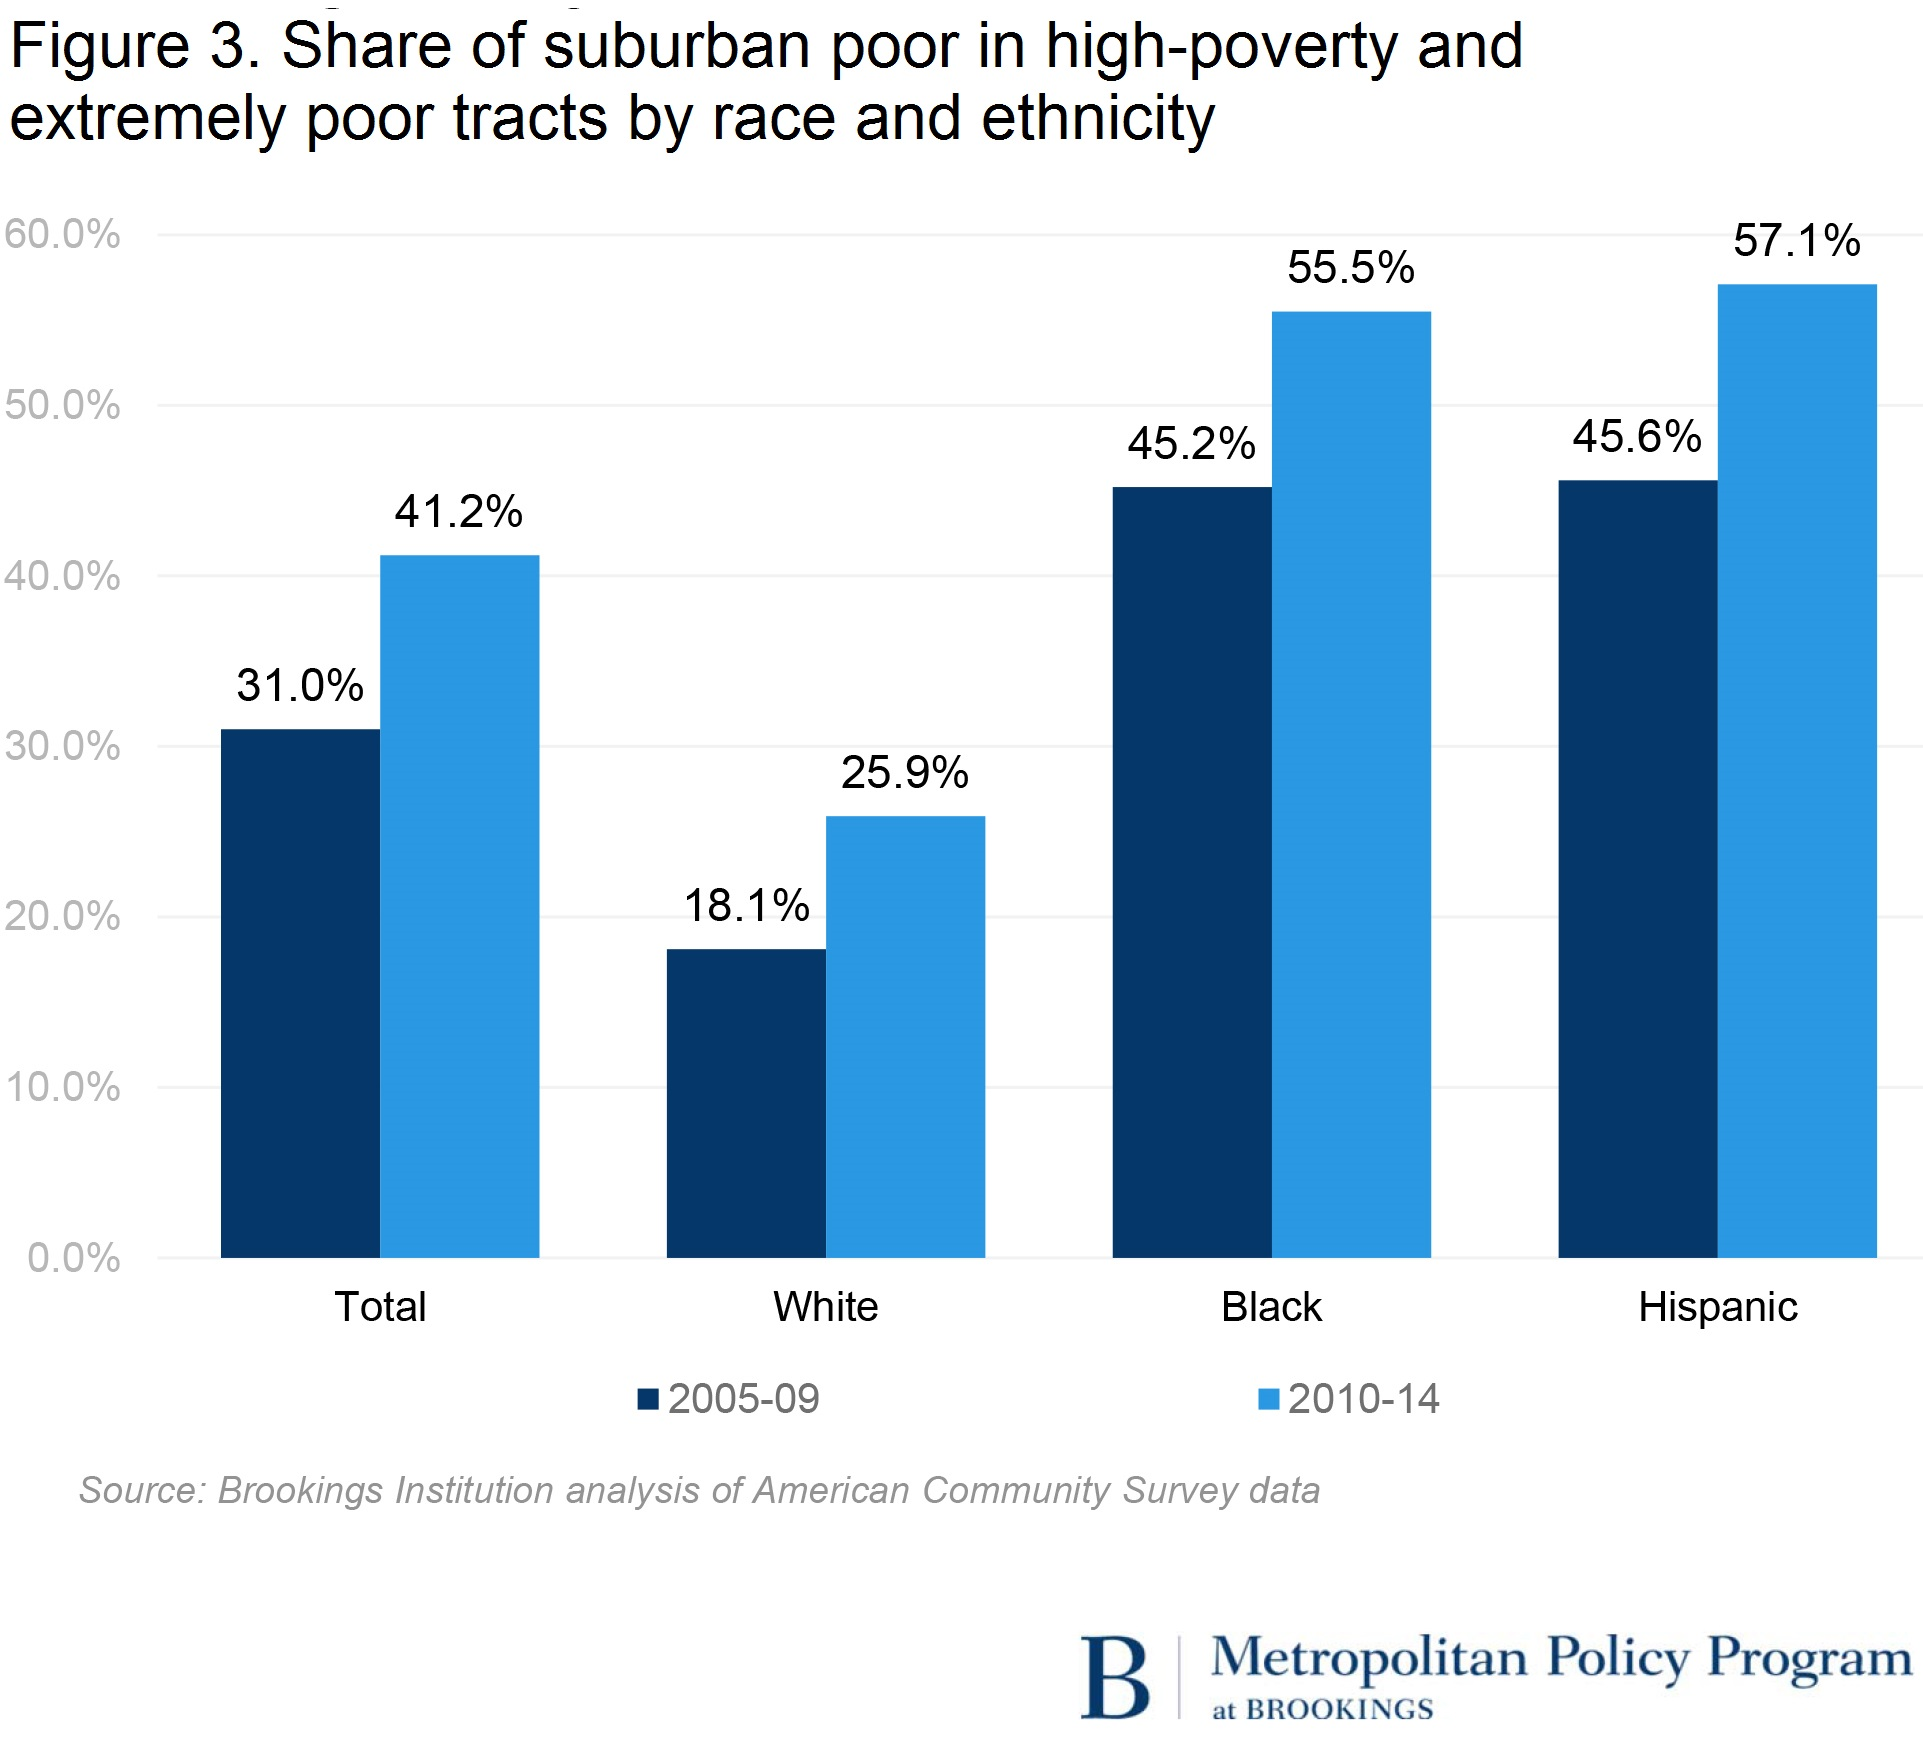 u s concentrated poverty in the wake of the great recession while high poverty neighborhoods grew in the same regions and types of communities that experienced upticks in extremely poor tracts they also emerged in